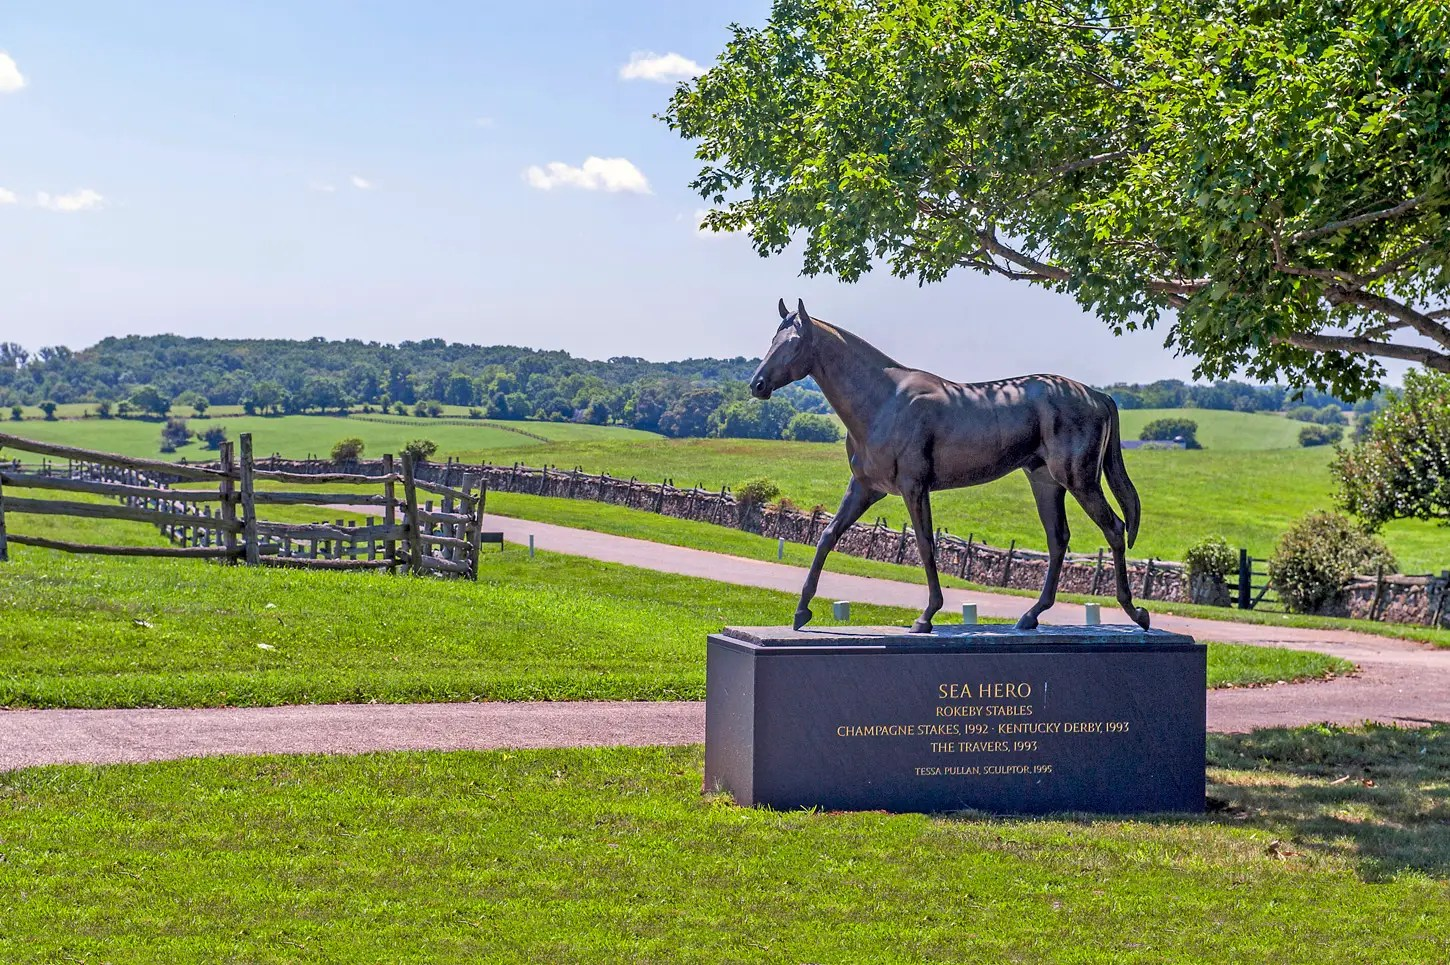 The Mellons also bred racehorses on the farm. There is a statue commemorating Sea Hero, their 1993 Kentucky Derby winner.